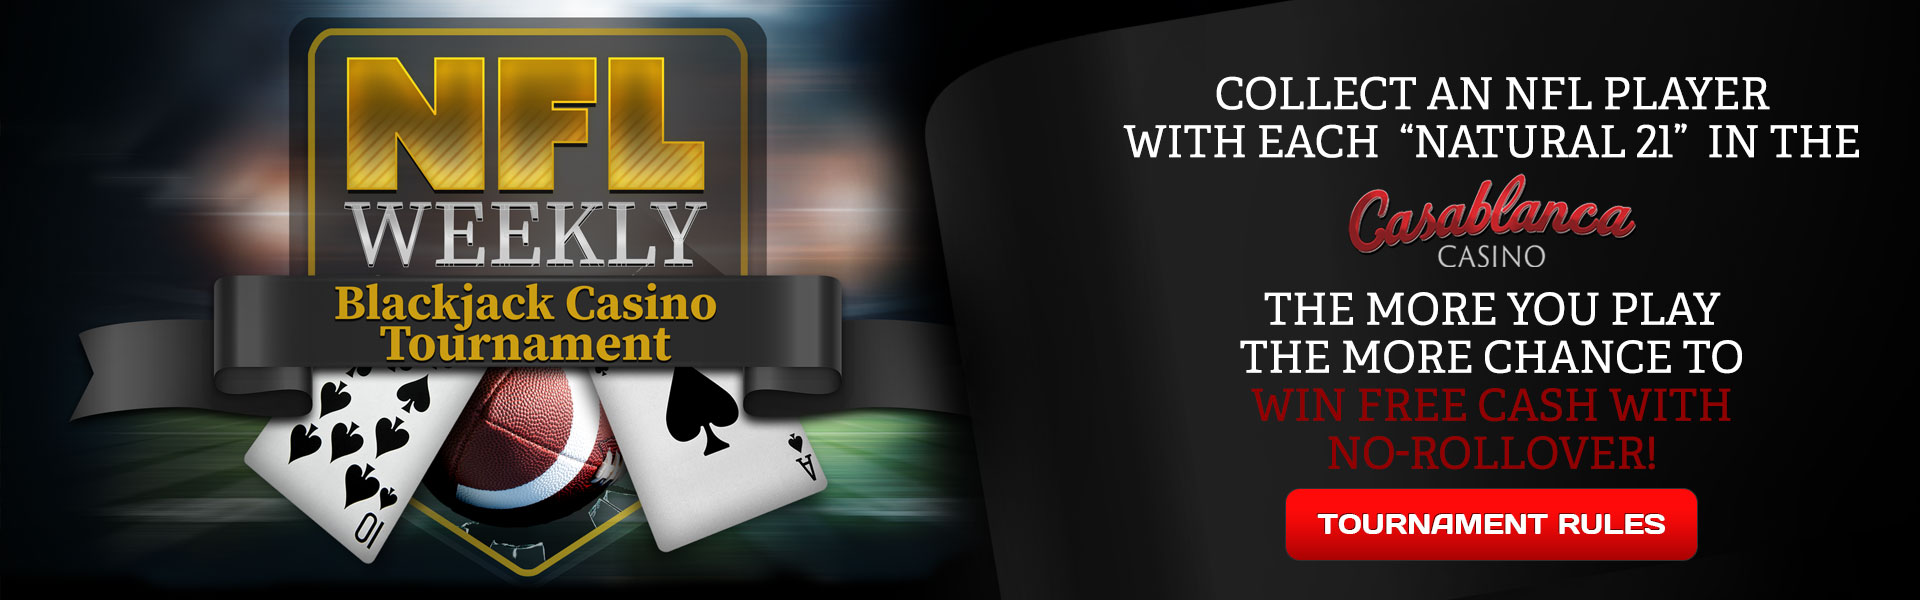 NFL Weekly Casino Blackjack Casino Tournament